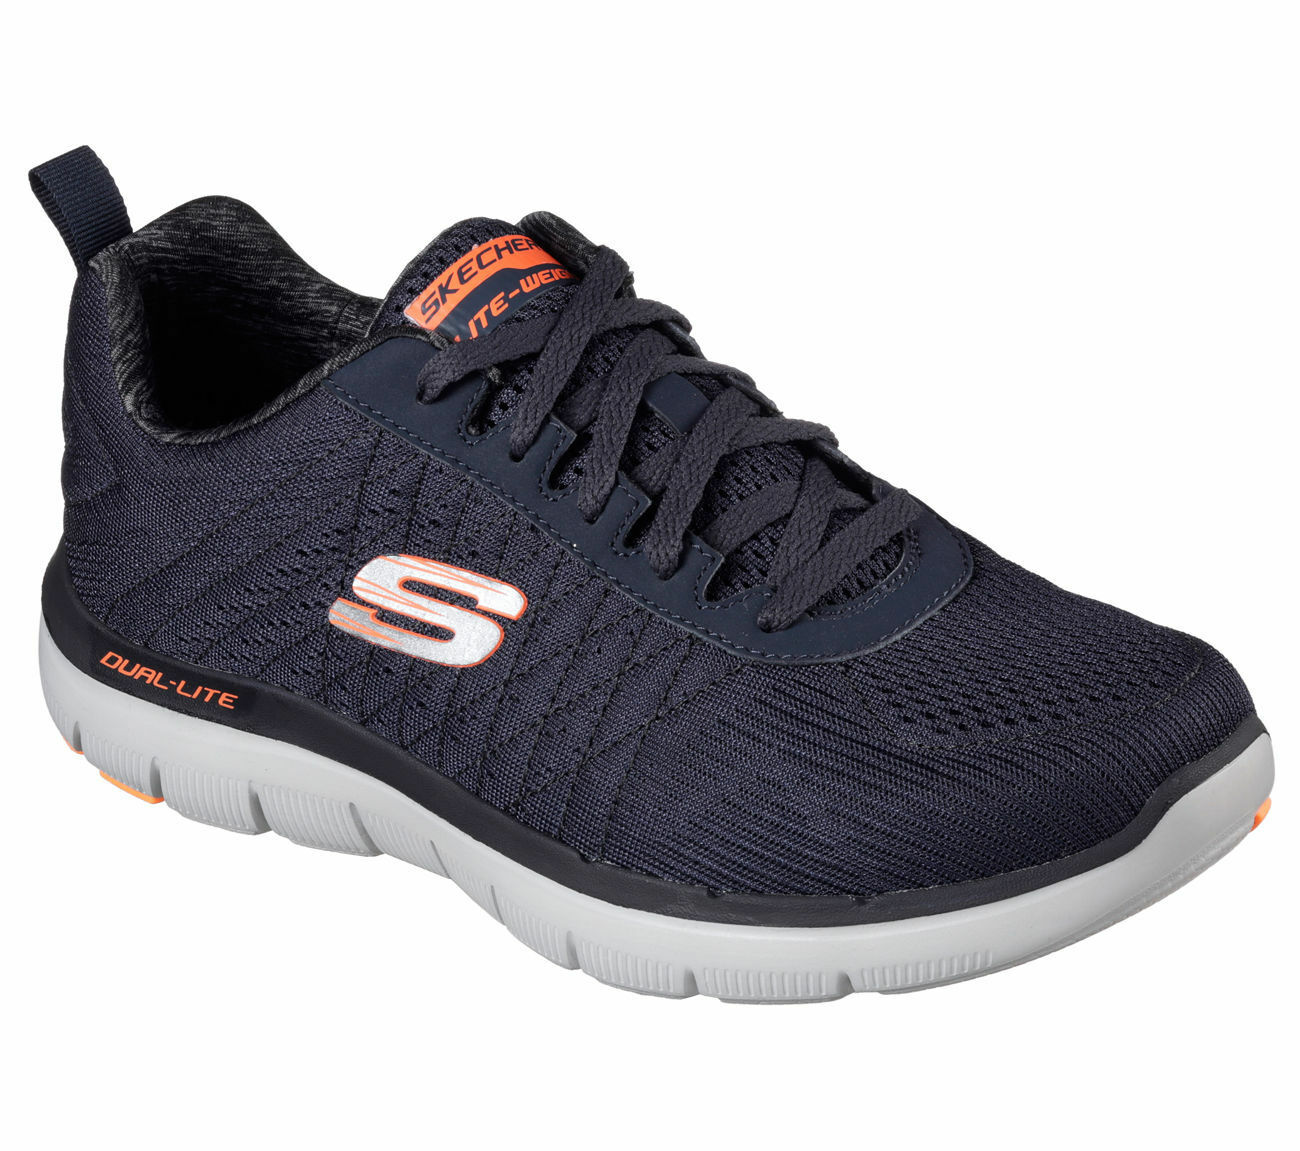 Skechers 52185 DKNV Men's FLEX ADVANTAGE 2.0-THE HAPPS Training shoes